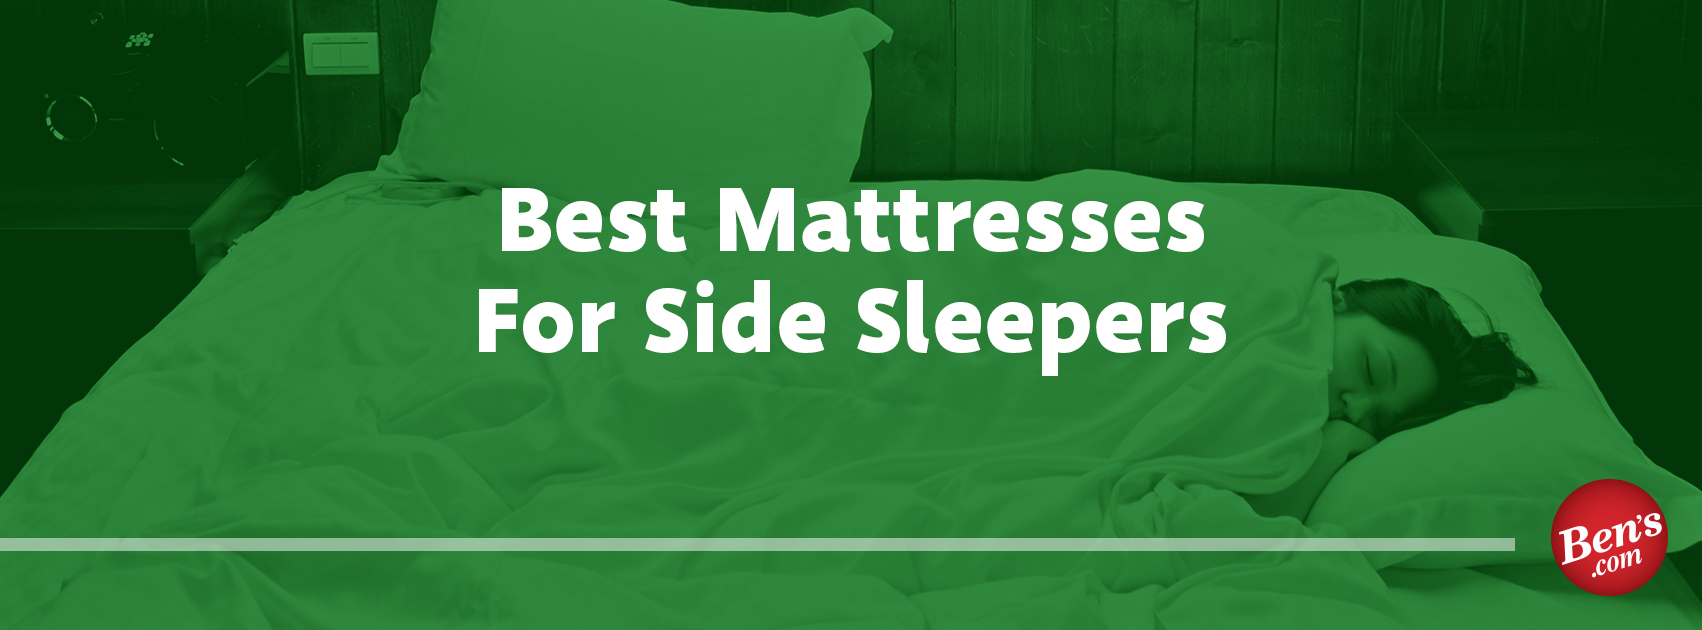 Best Mattresses for Side Sleepers Ben s Furniture